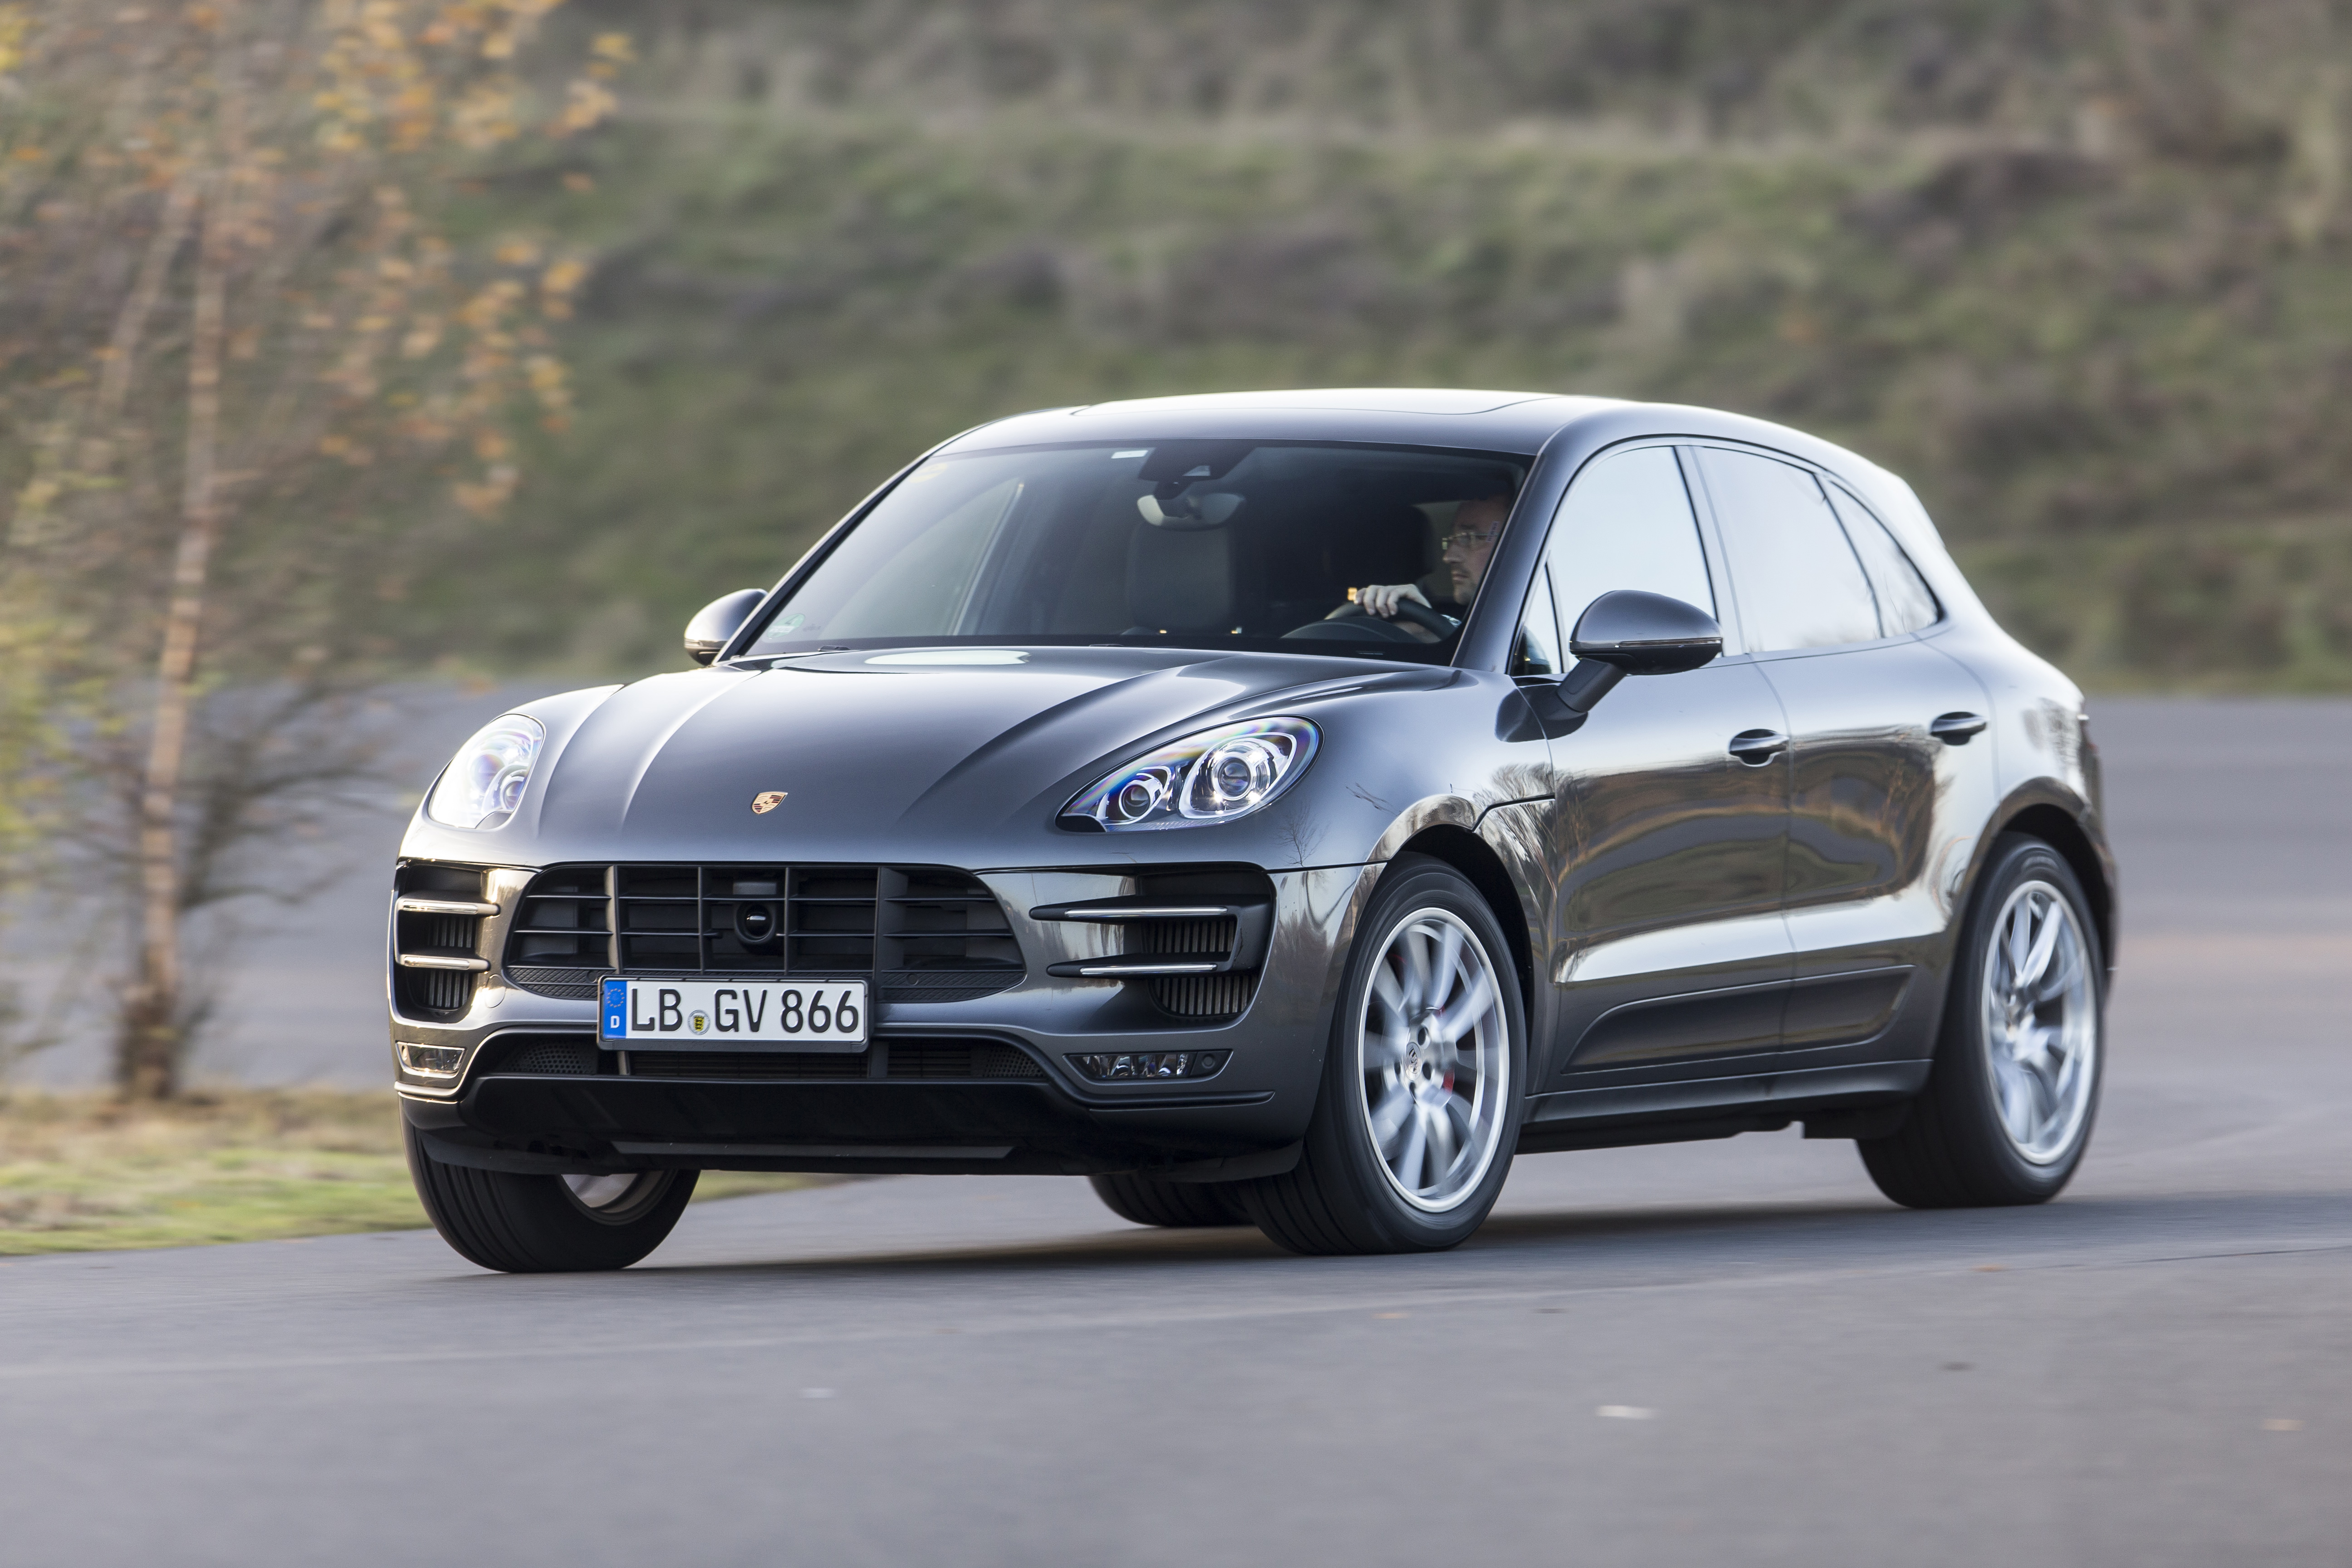 2015 PORSCHE MACAN – THE STYLISH UTILITY VEHICLE - Image #15